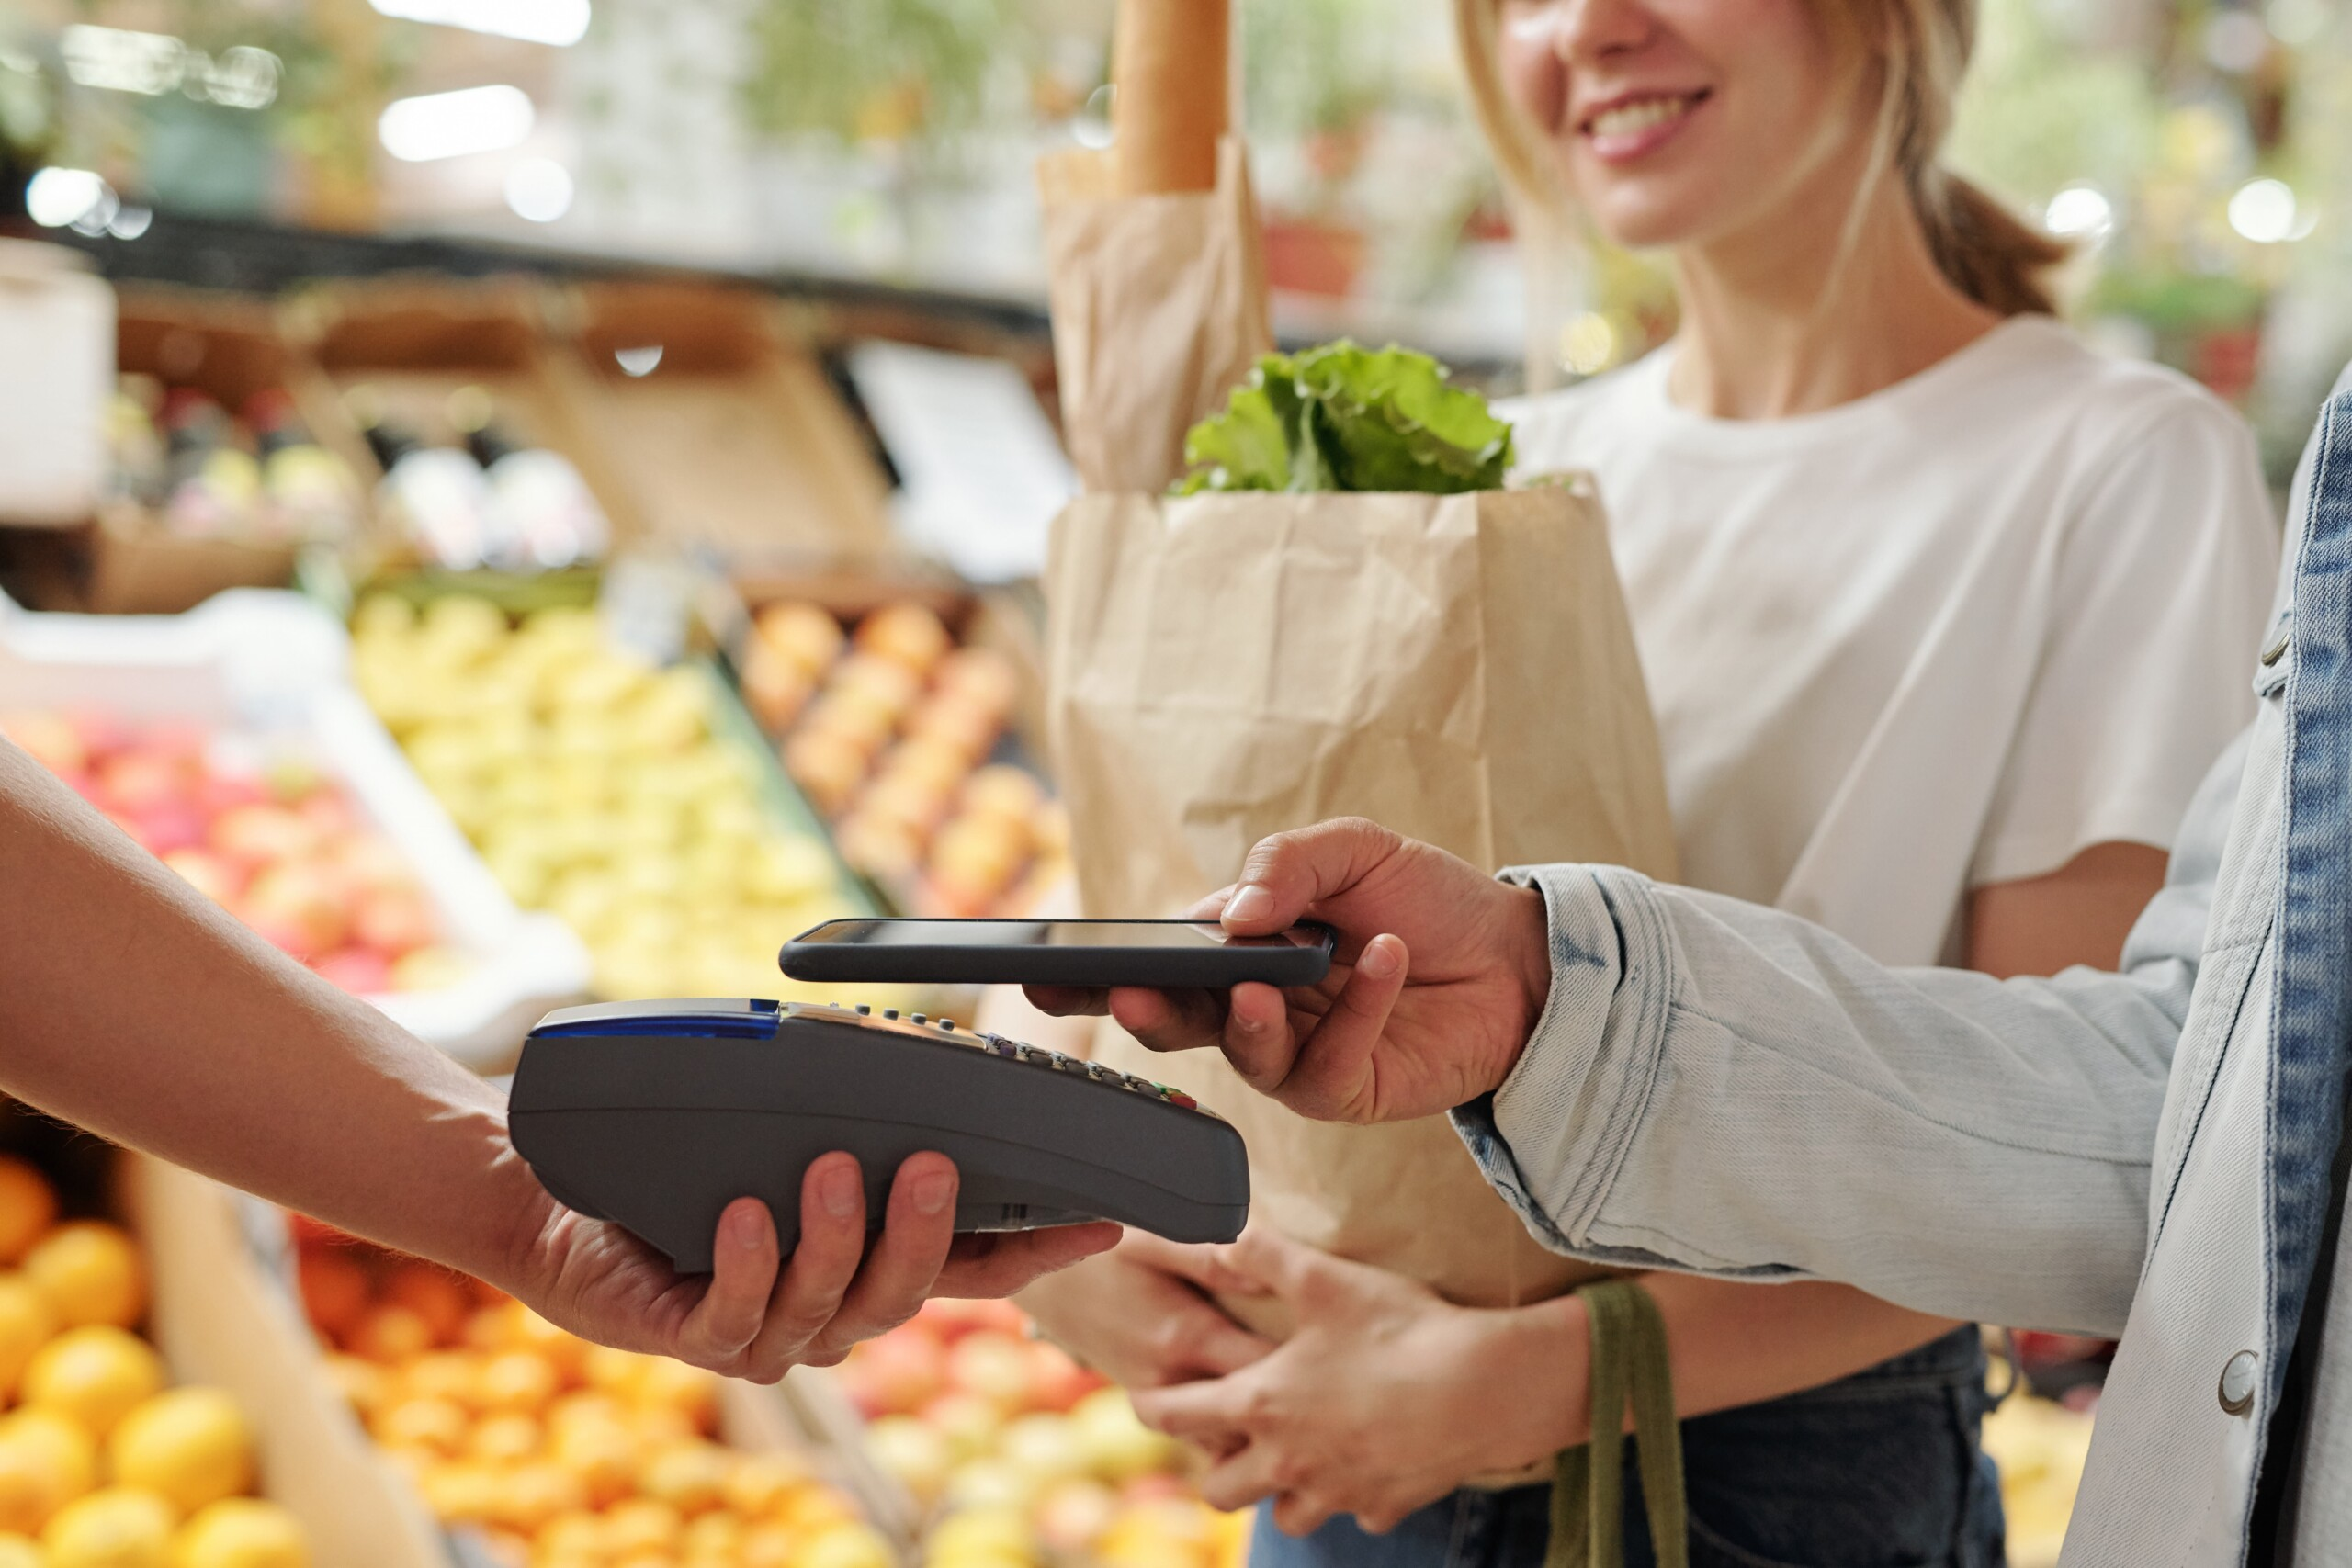 Contactless payment by a couple at a retail store